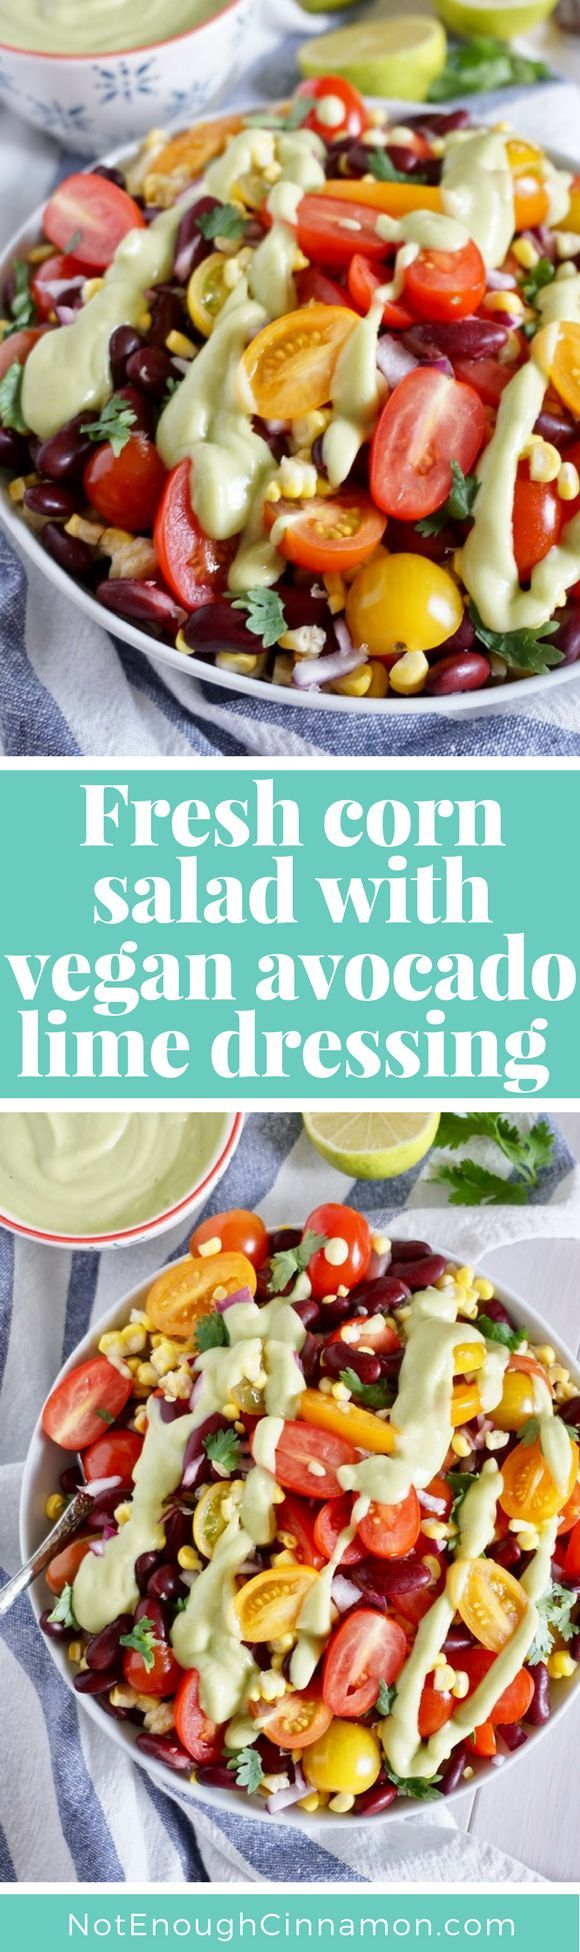 191 best Vegetarian Eats images on Pinterest | Healthy lunches ...